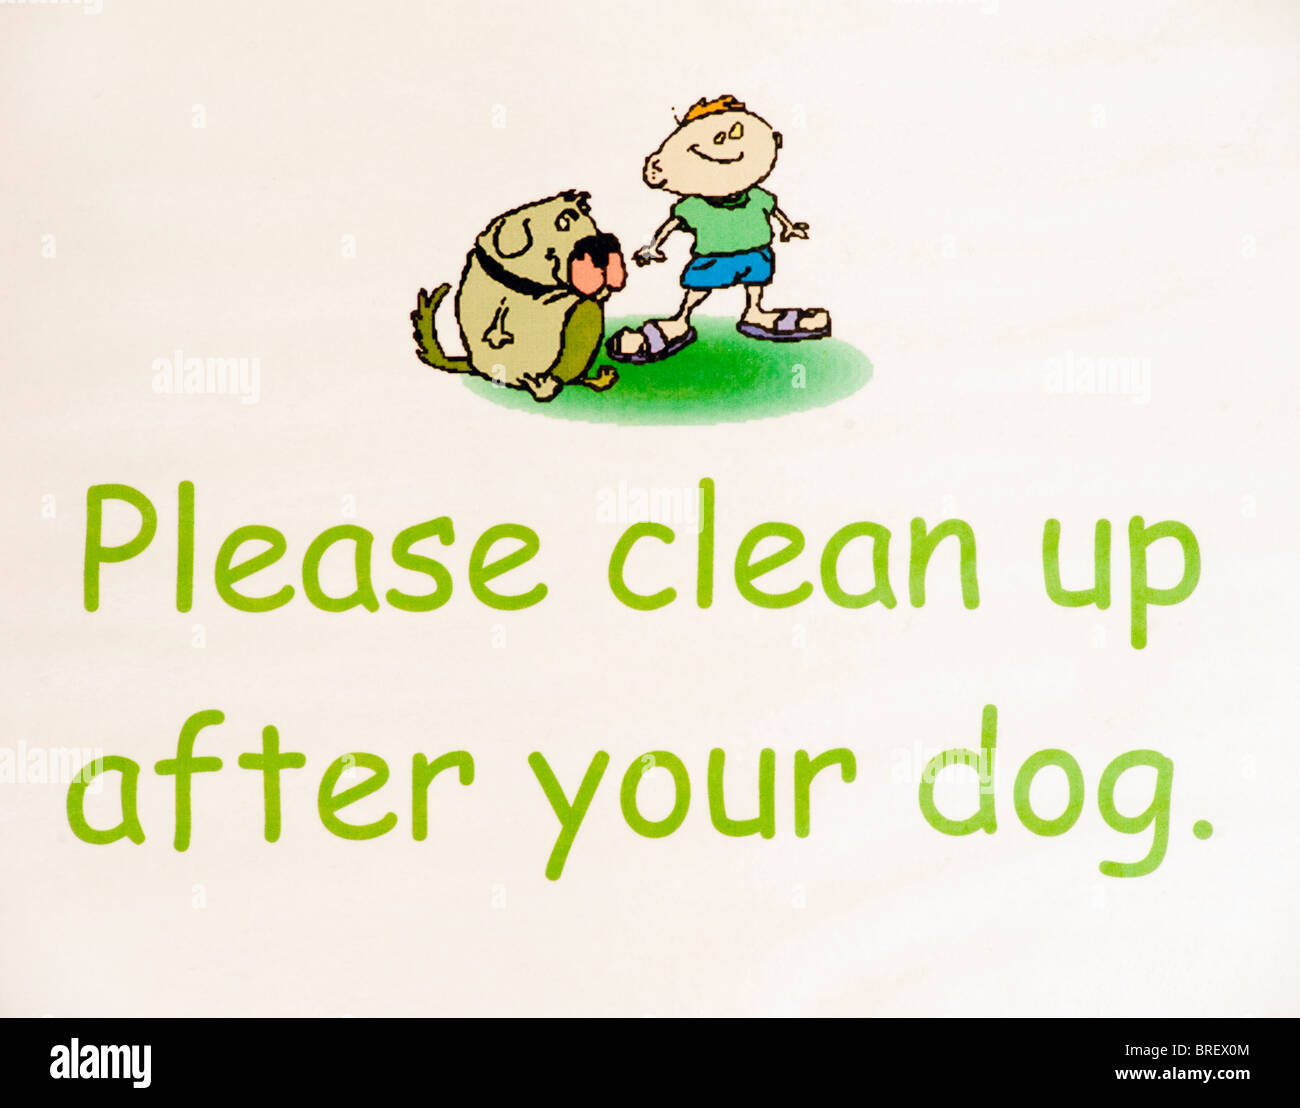 Notice displaying Please clean up after your dog - Stock Image